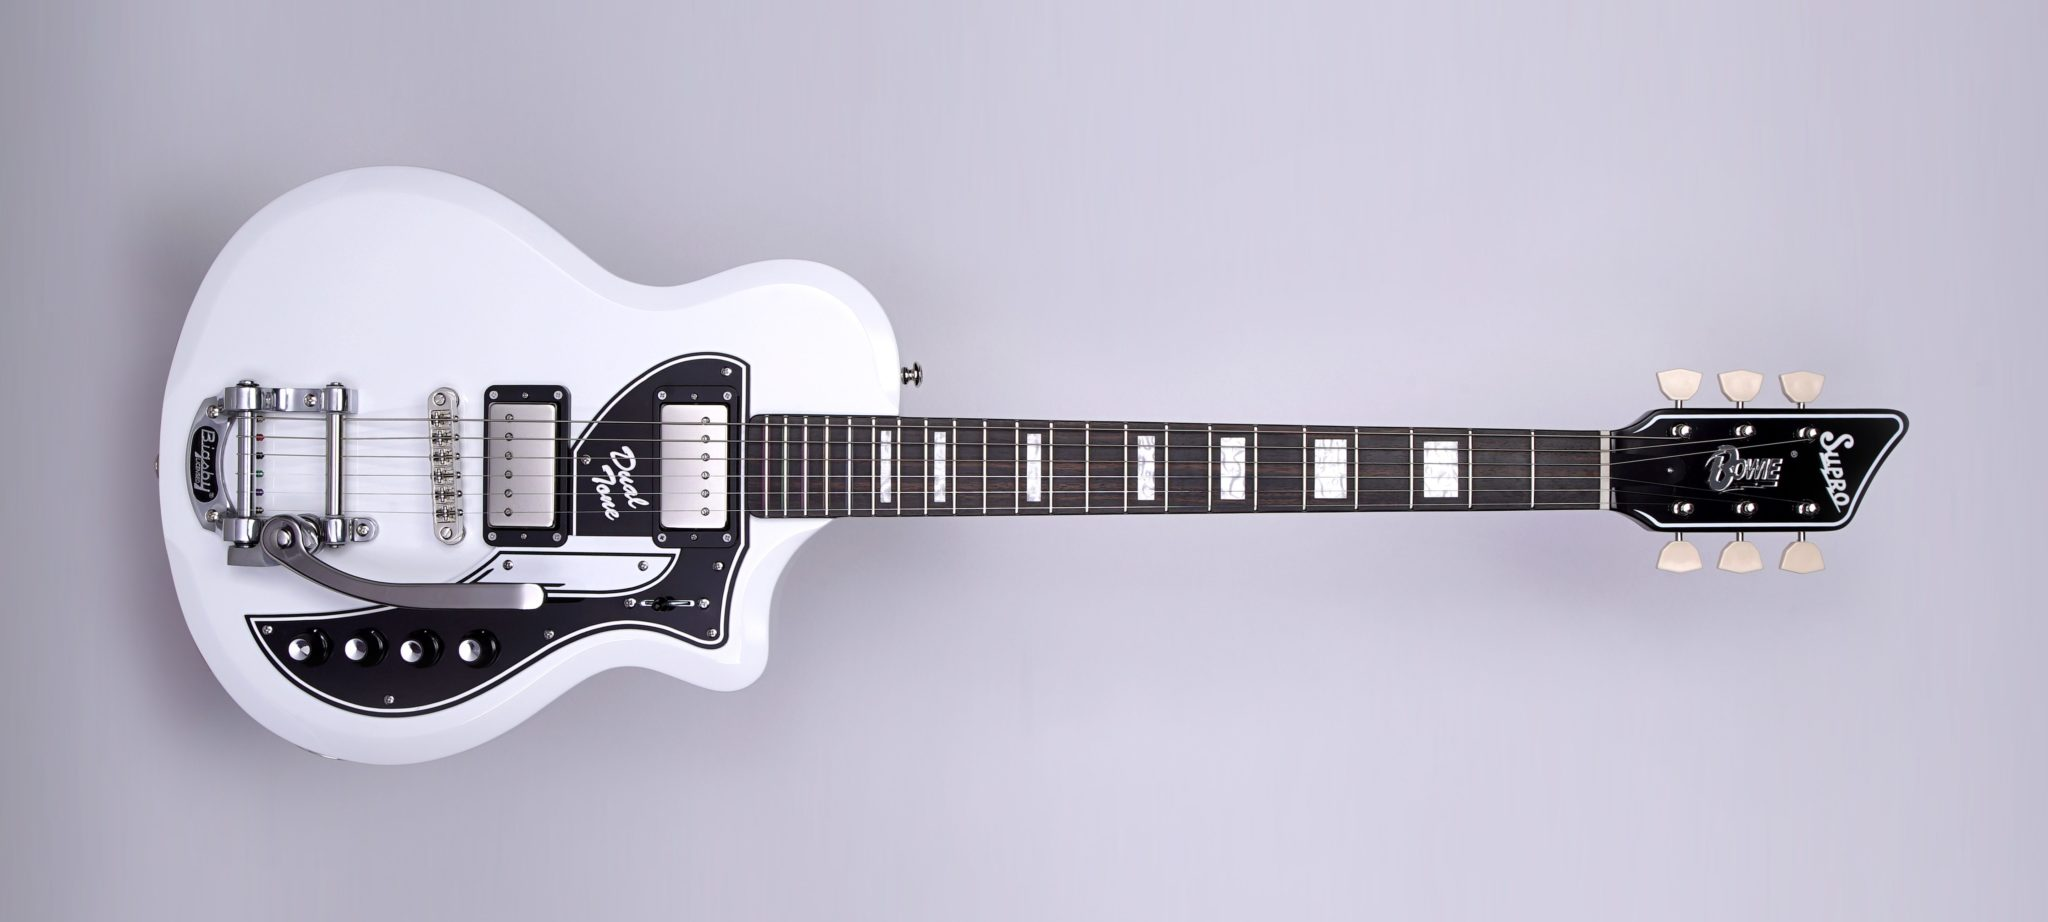 Supro Celebrates David Bowie with Limited Edition Dual Tone Guitar At NAMM 2018